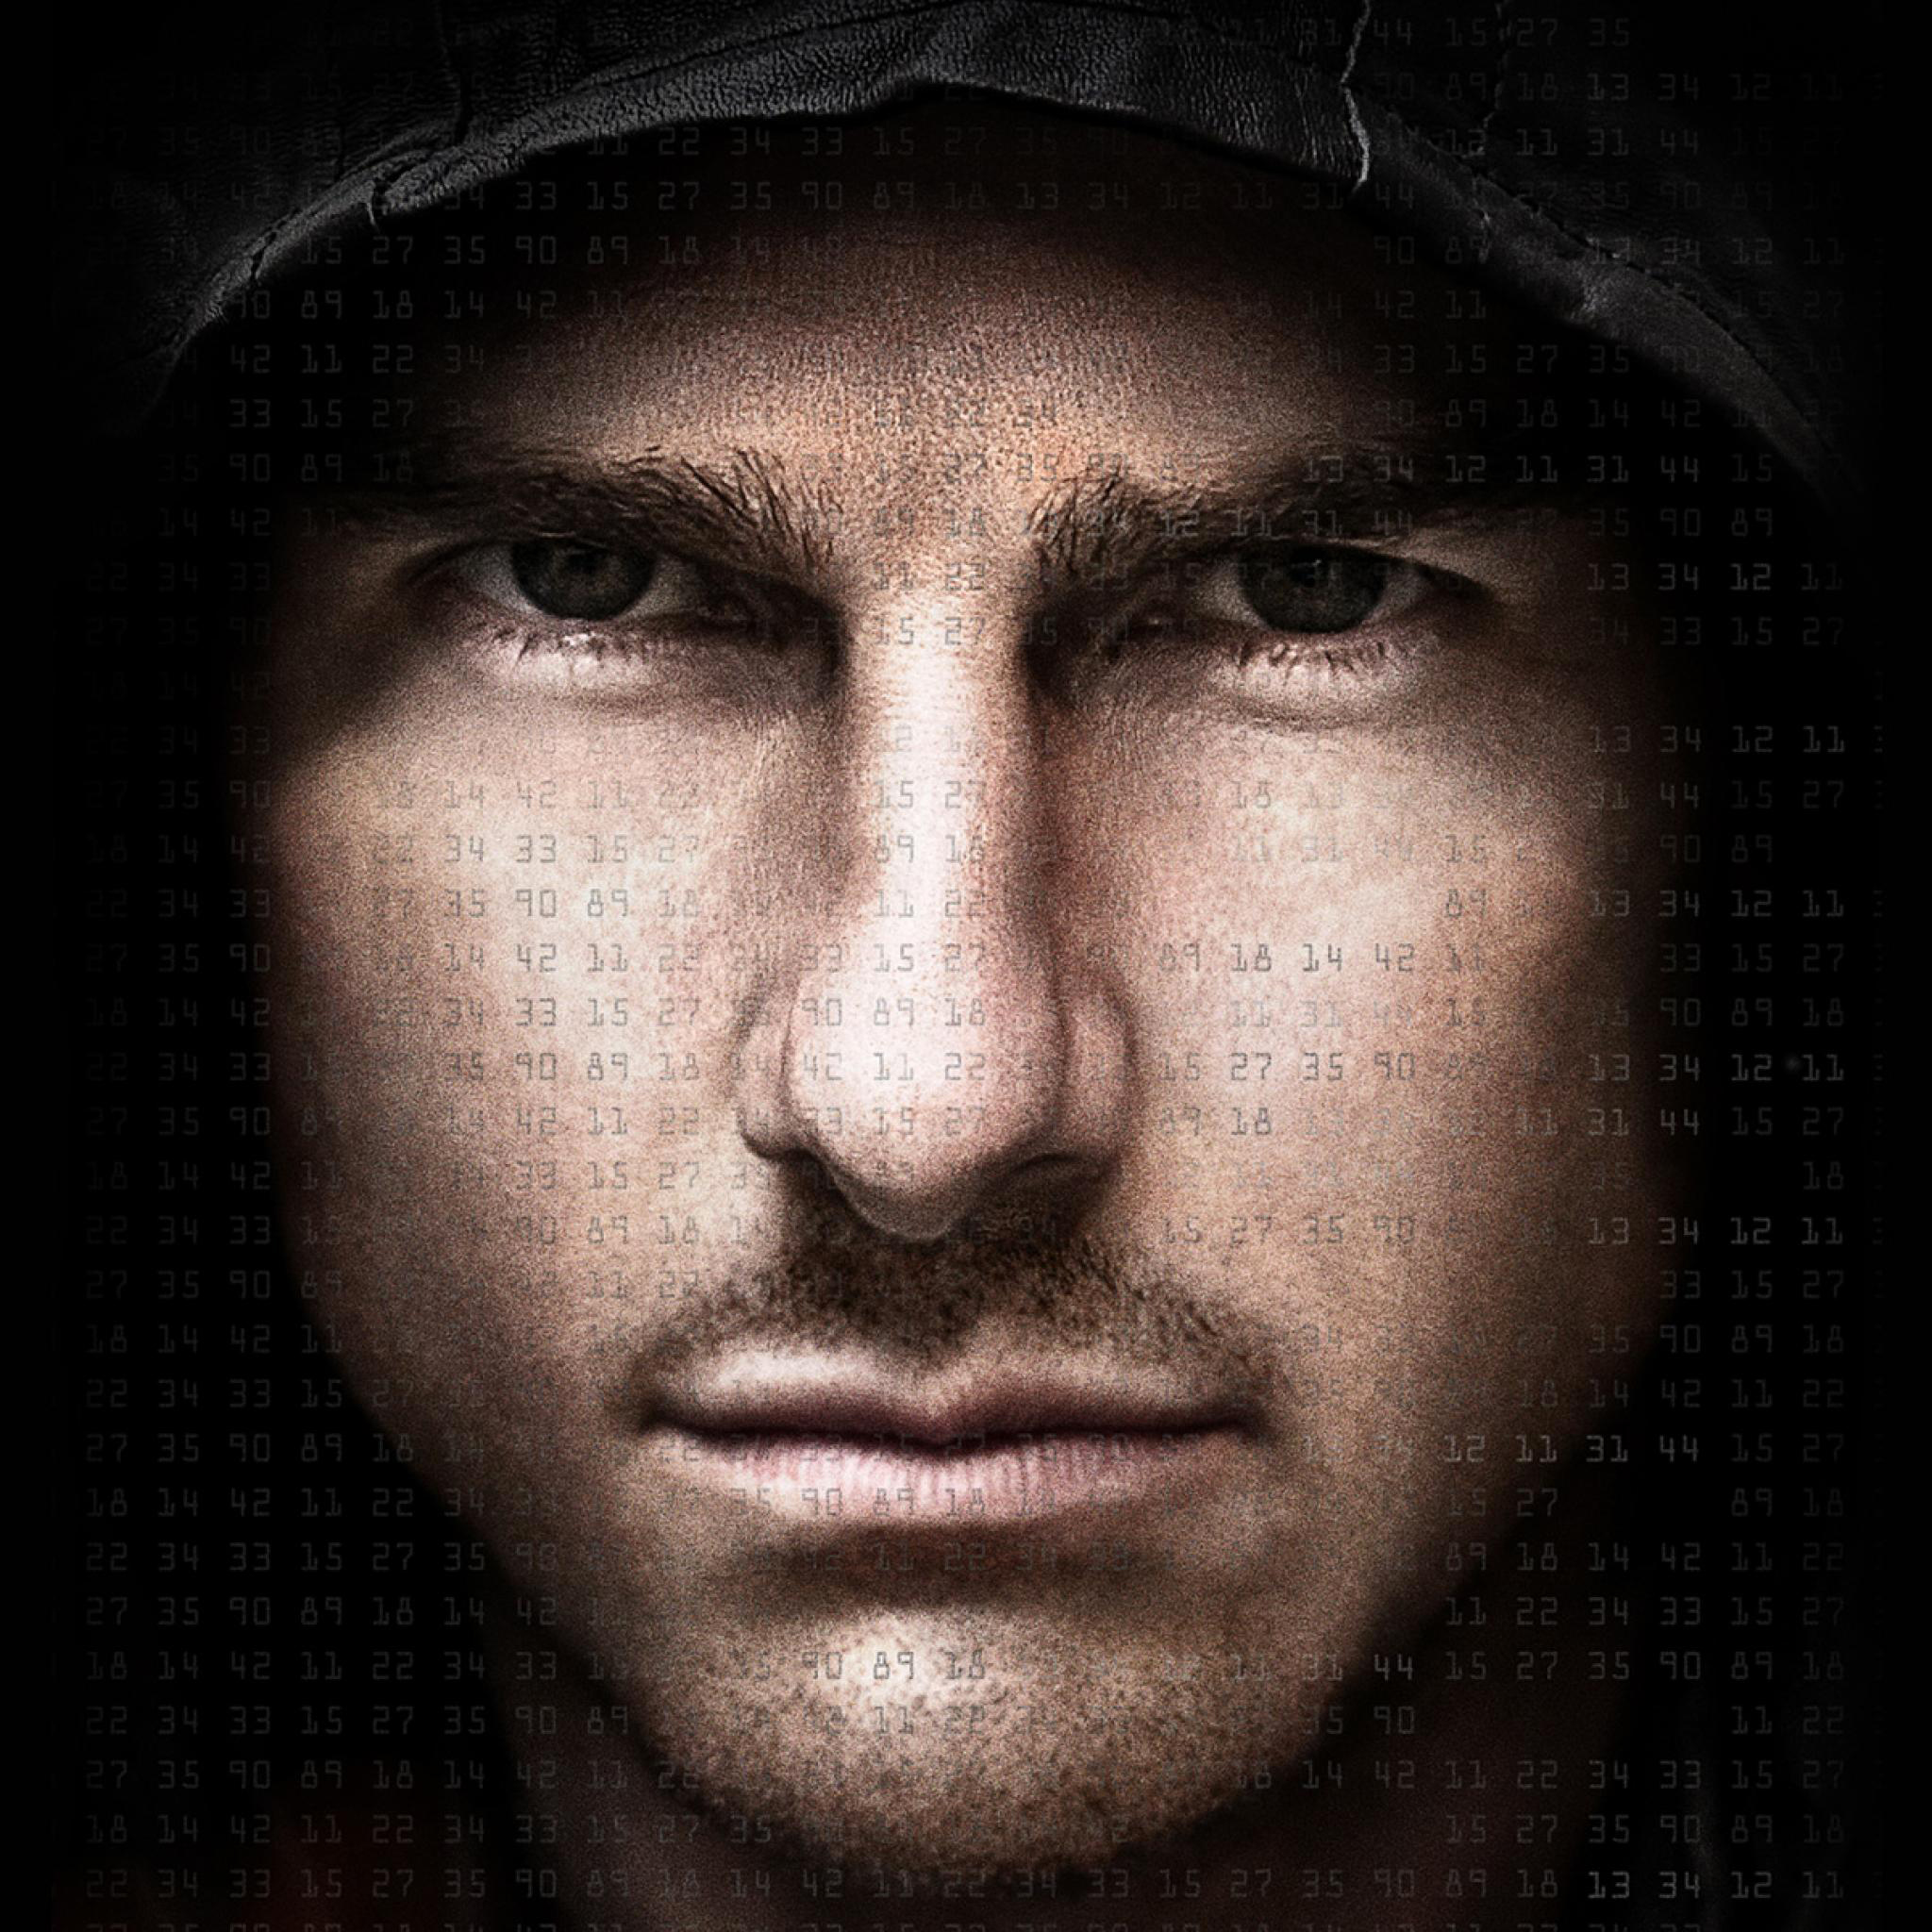 Mission Impossible 4 Ghost Protocol 3Wallpapers iPad Retina Mission Impossible 4   Ghost Protocol   iPad Retina